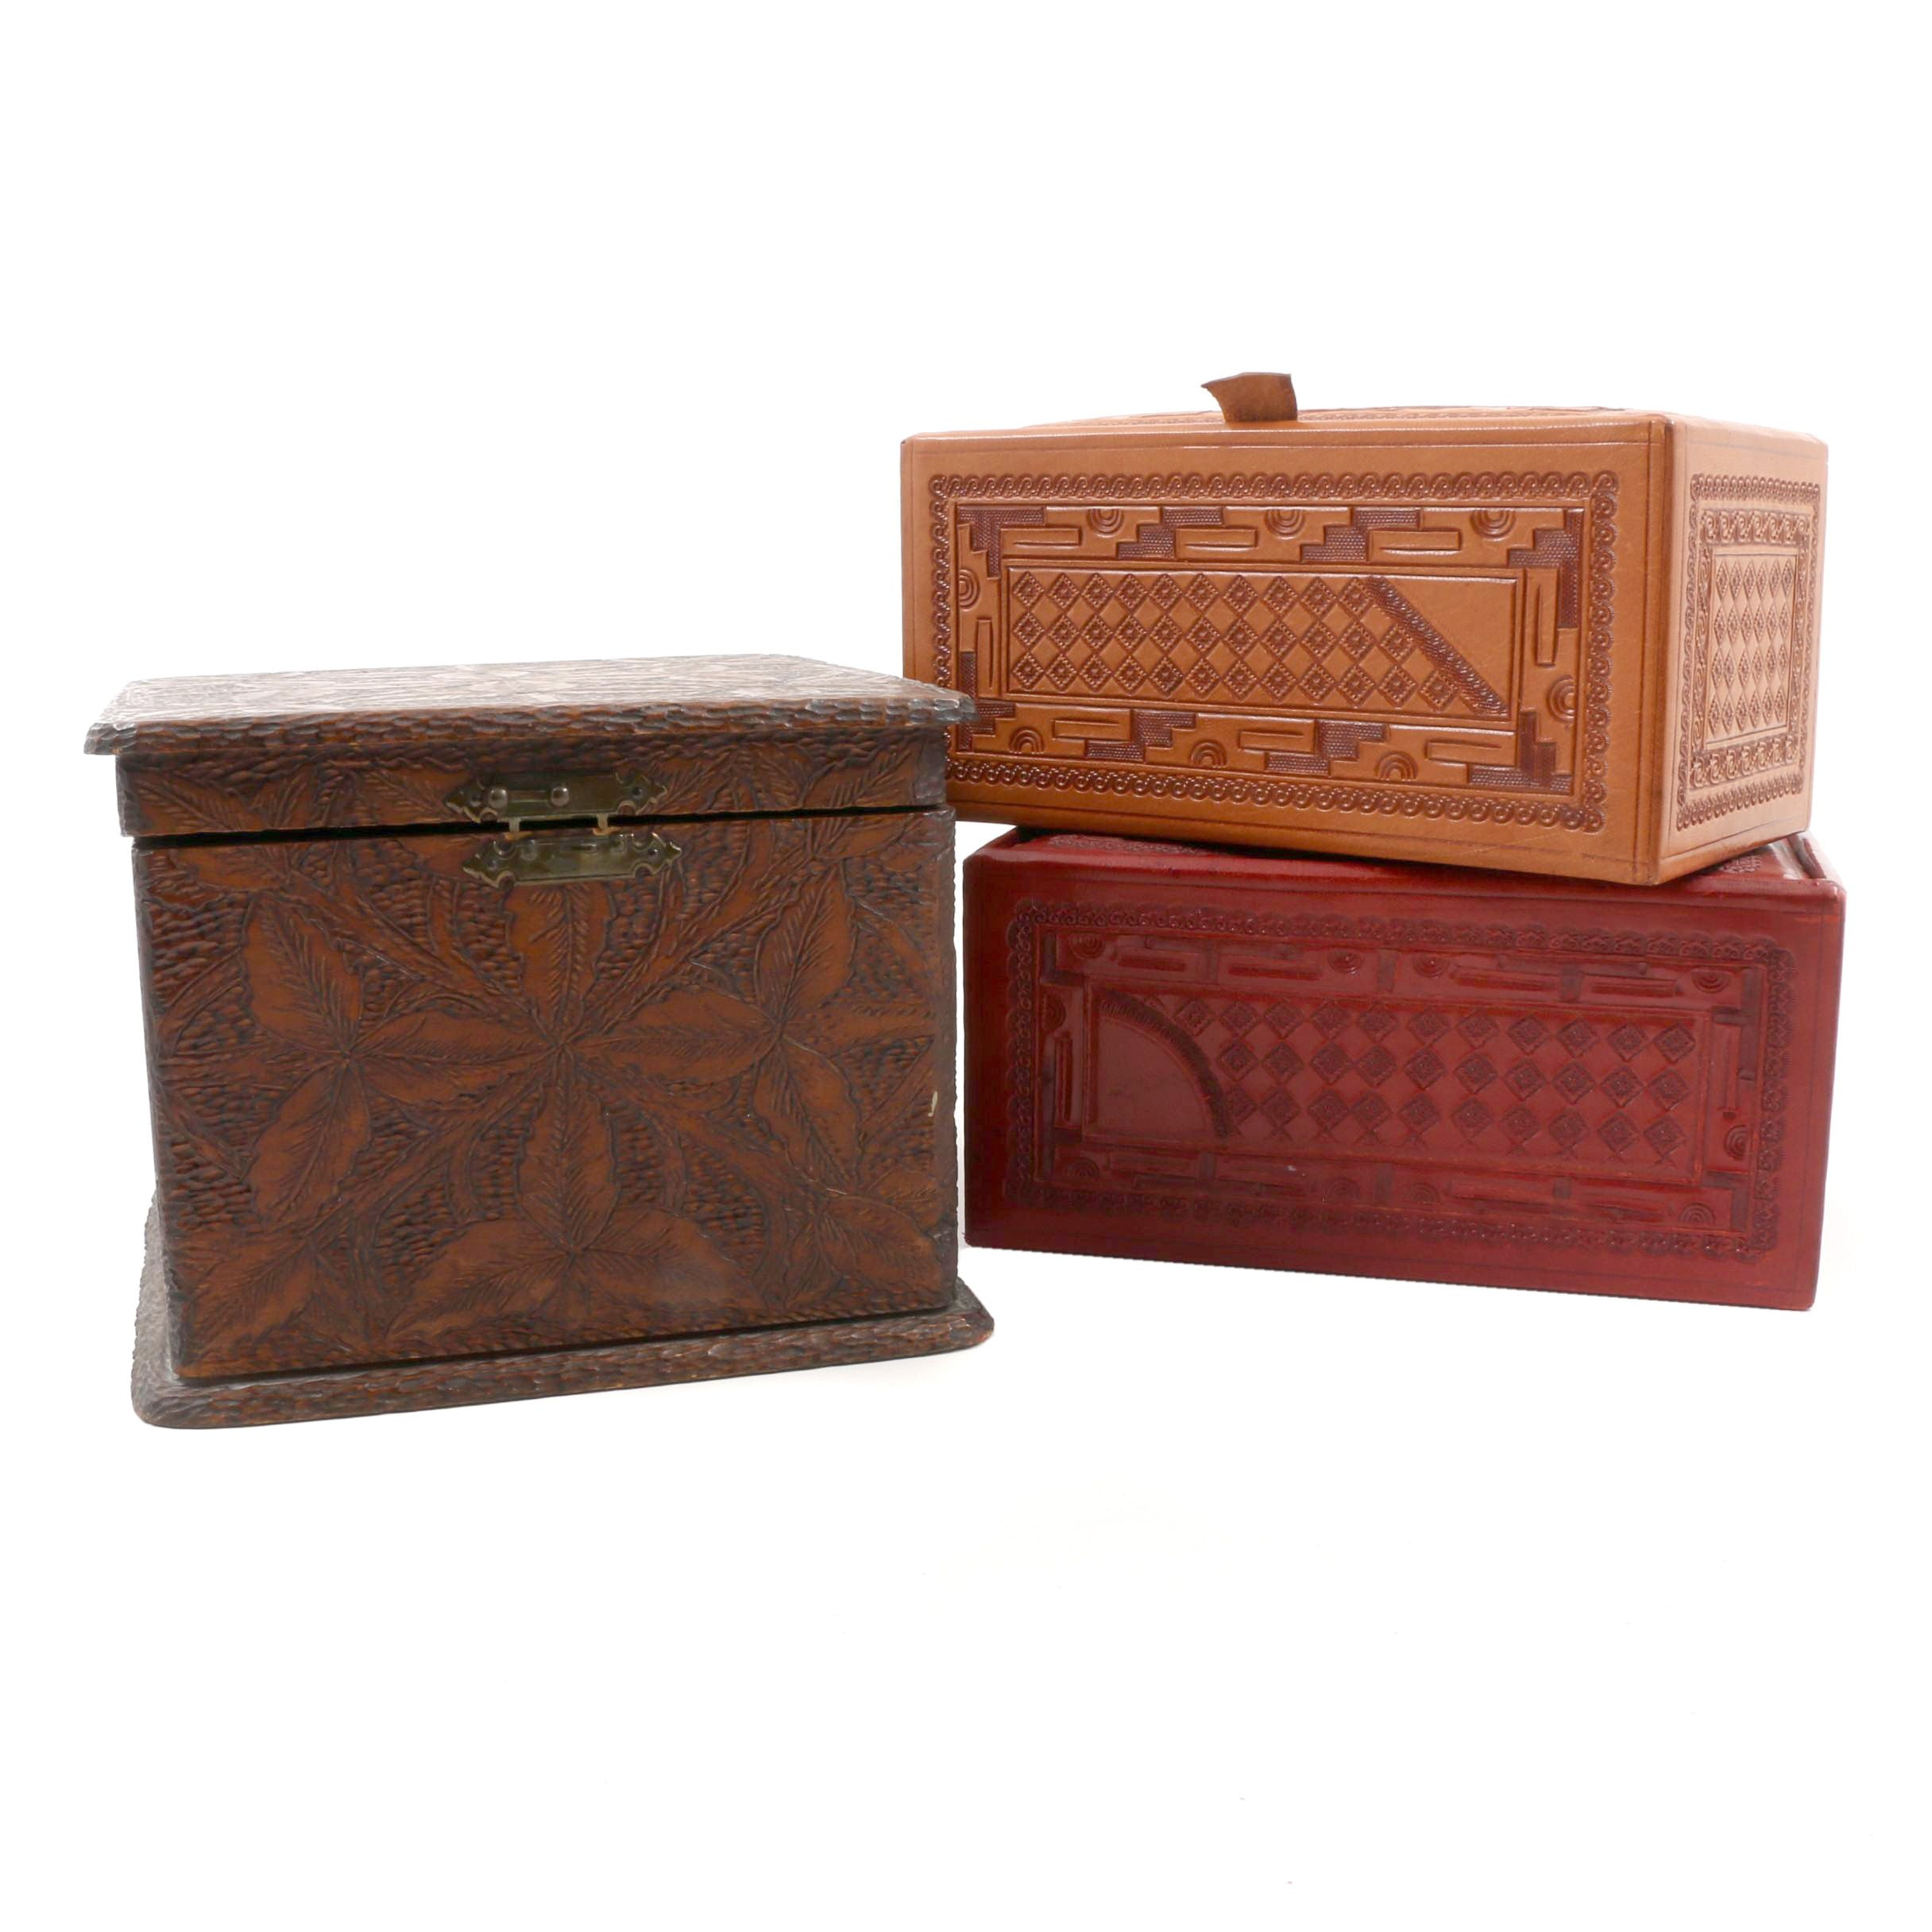 Assortment of Decorative Boxes